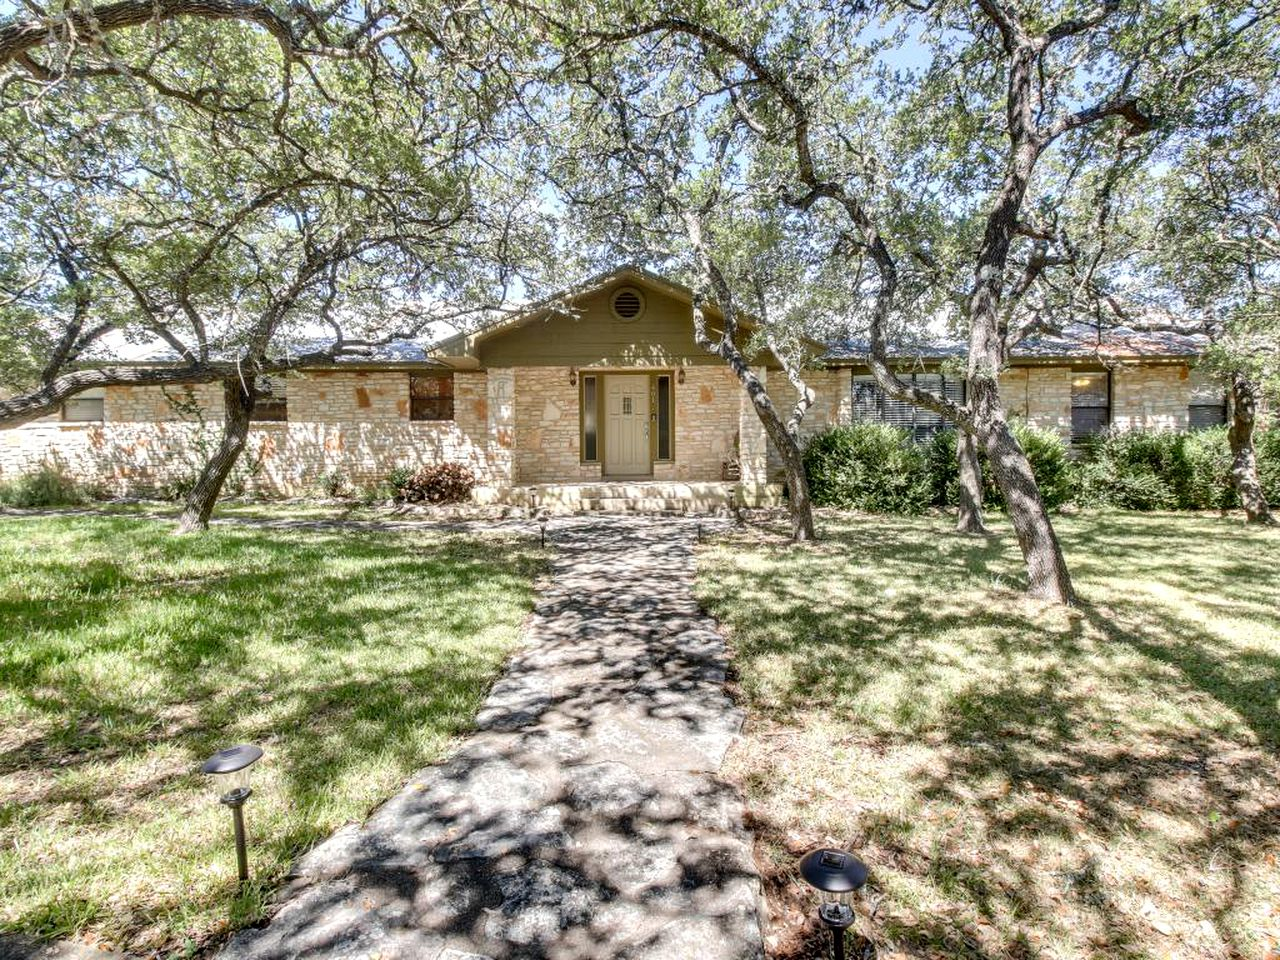 Cabins (Dripping Springs, Texas, United States)